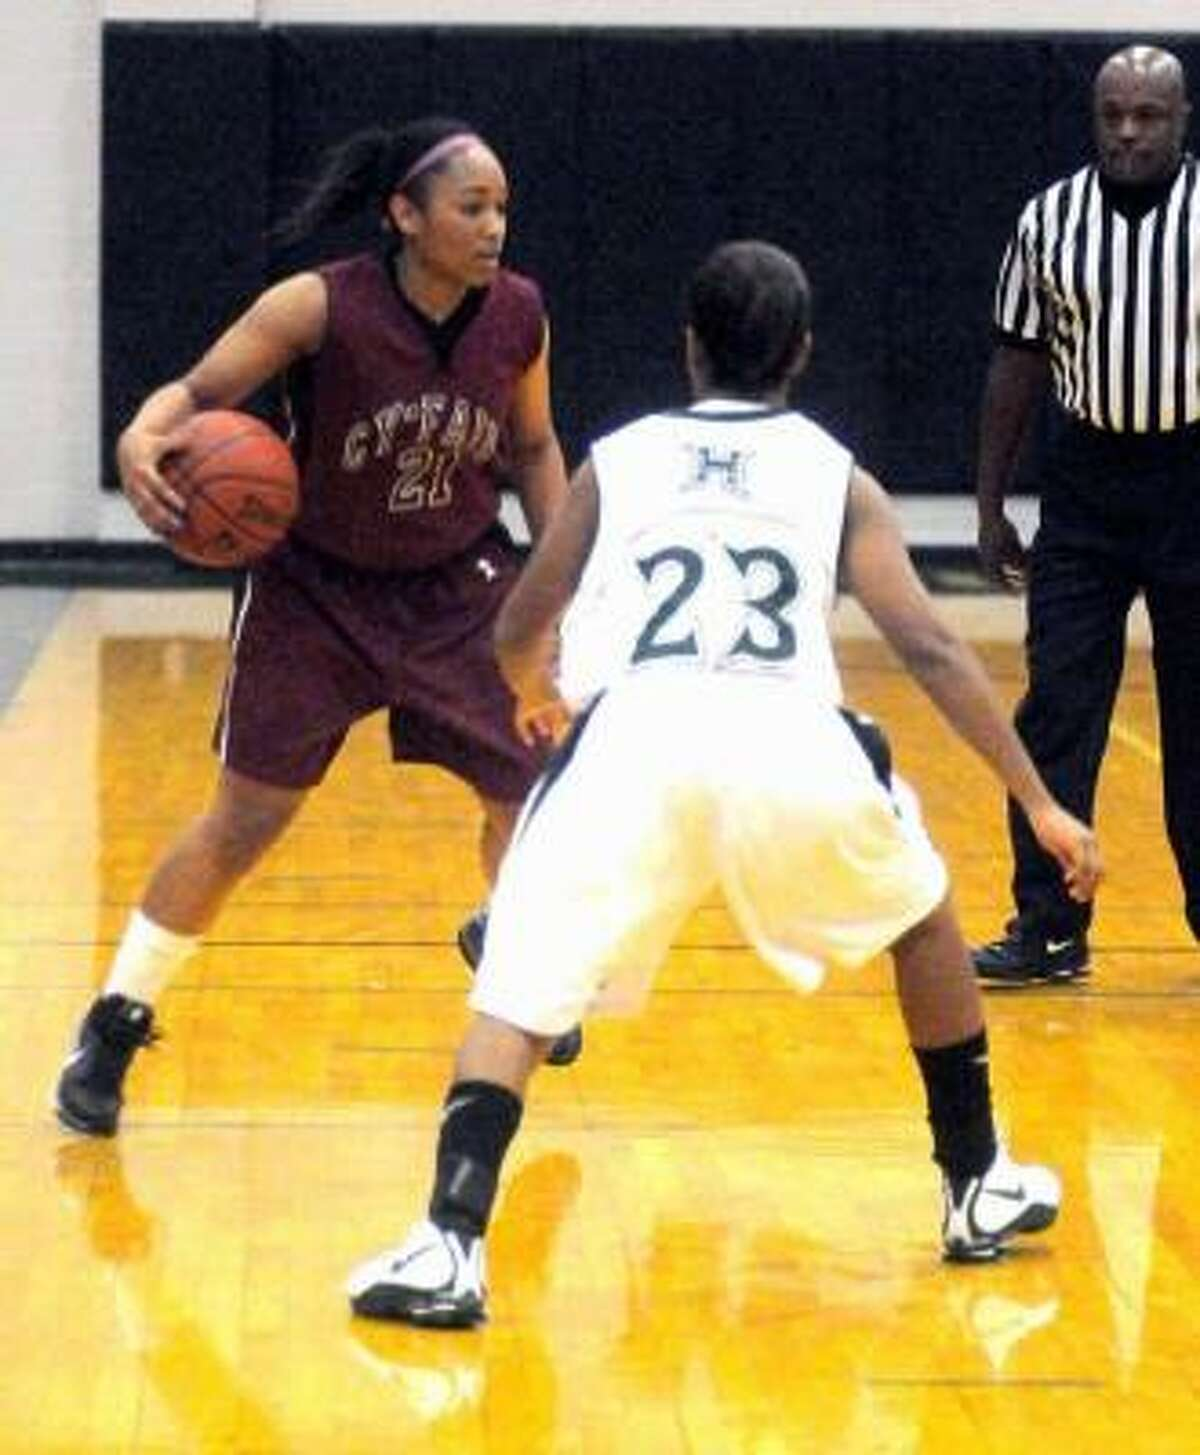 Cy-Fair point guard Cassie Peoples brings the ball upcourt against Hightower defender Bria Butler during the game on Nov. 14 in Missouri City.